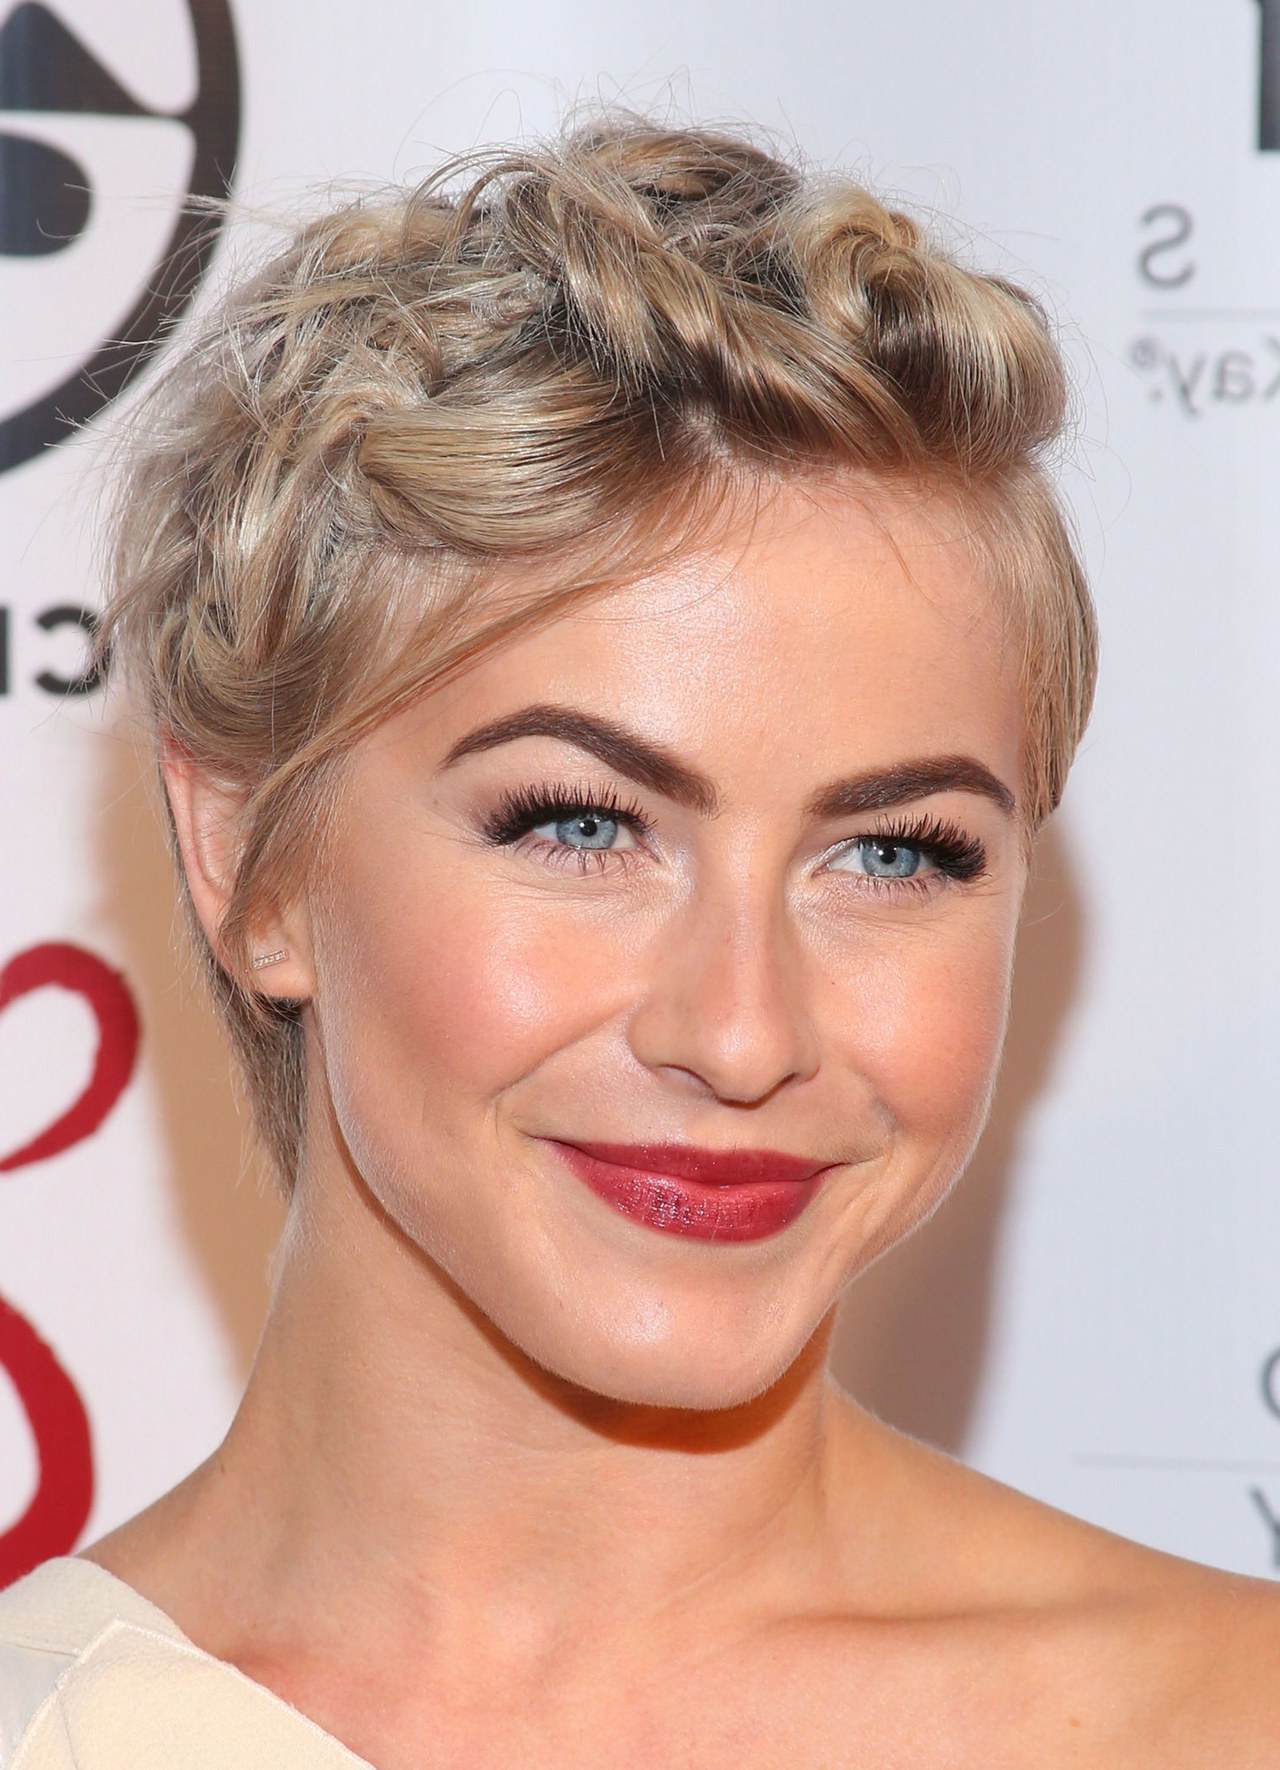 Julianne Hough Shows A Cute Hairstyle Option For Short Hair For Inside Julianne Hough Short Hairstyles (View 3 of 25)